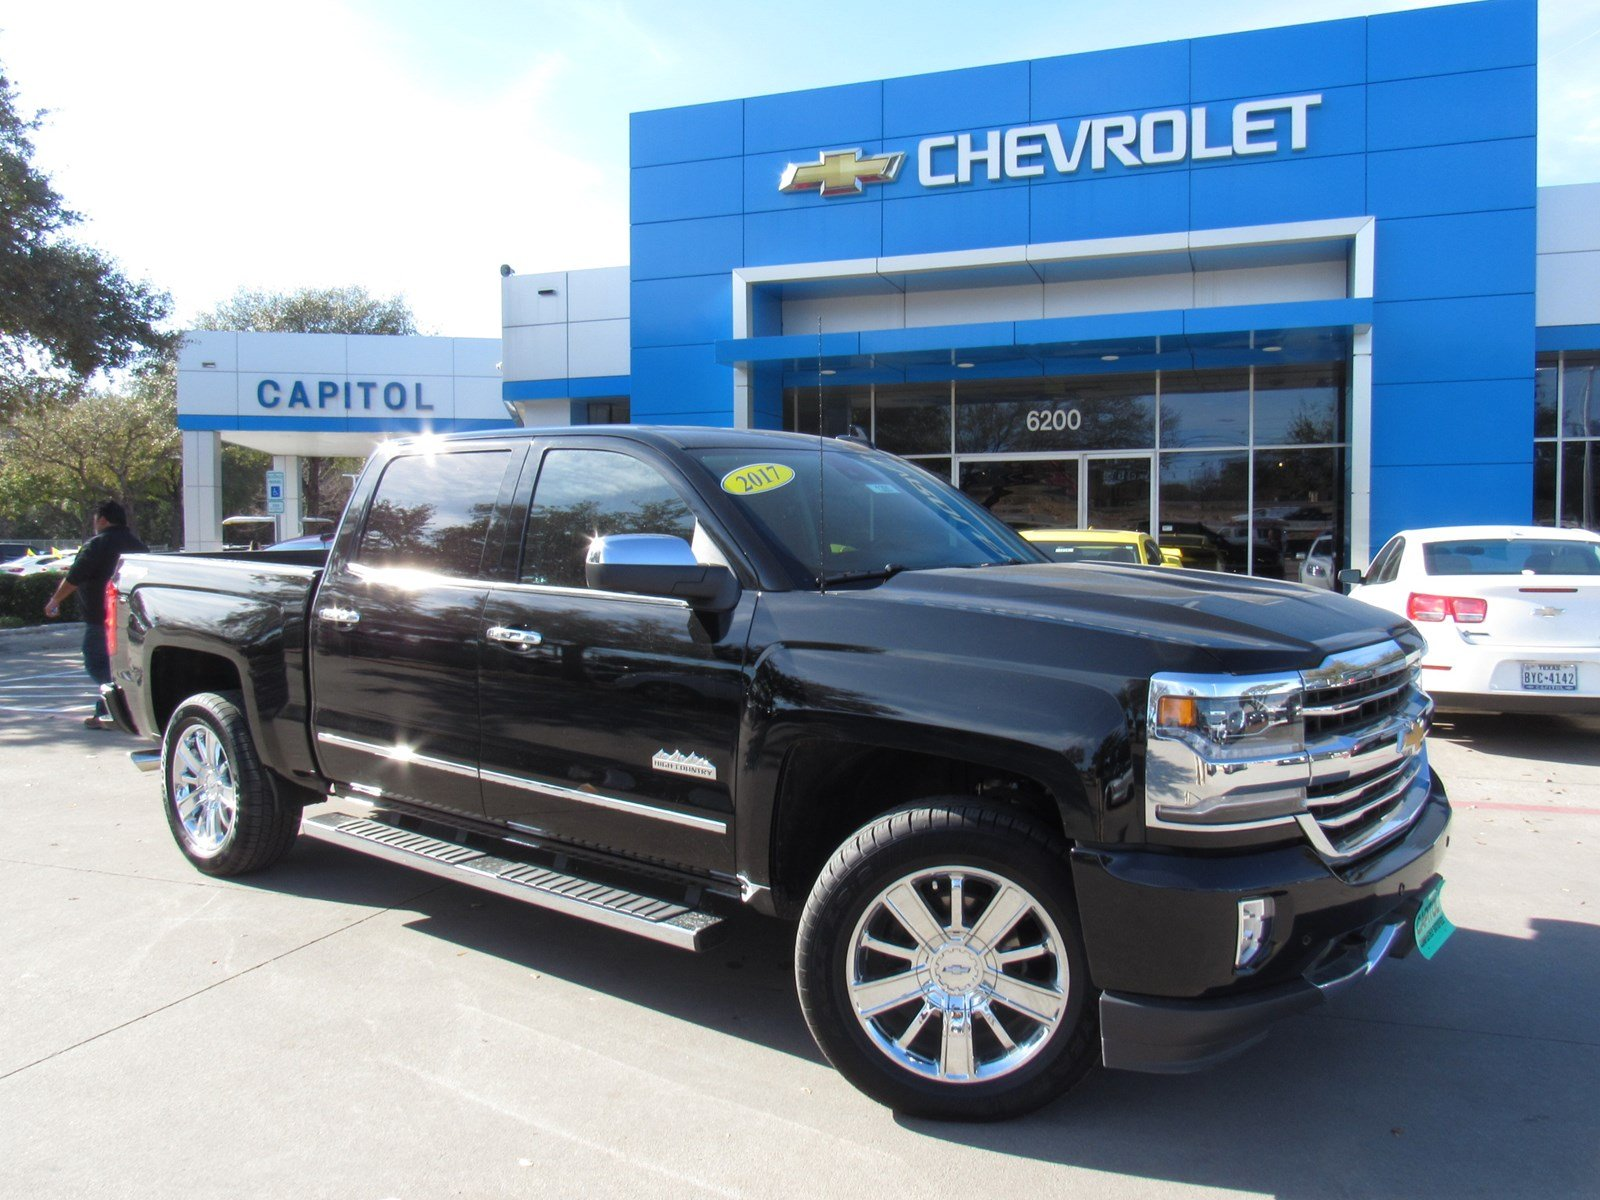 new 2017 chevrolet silverado 1500 high country crew cab pickup in austin 171285 capitol chevrolet. Black Bedroom Furniture Sets. Home Design Ideas